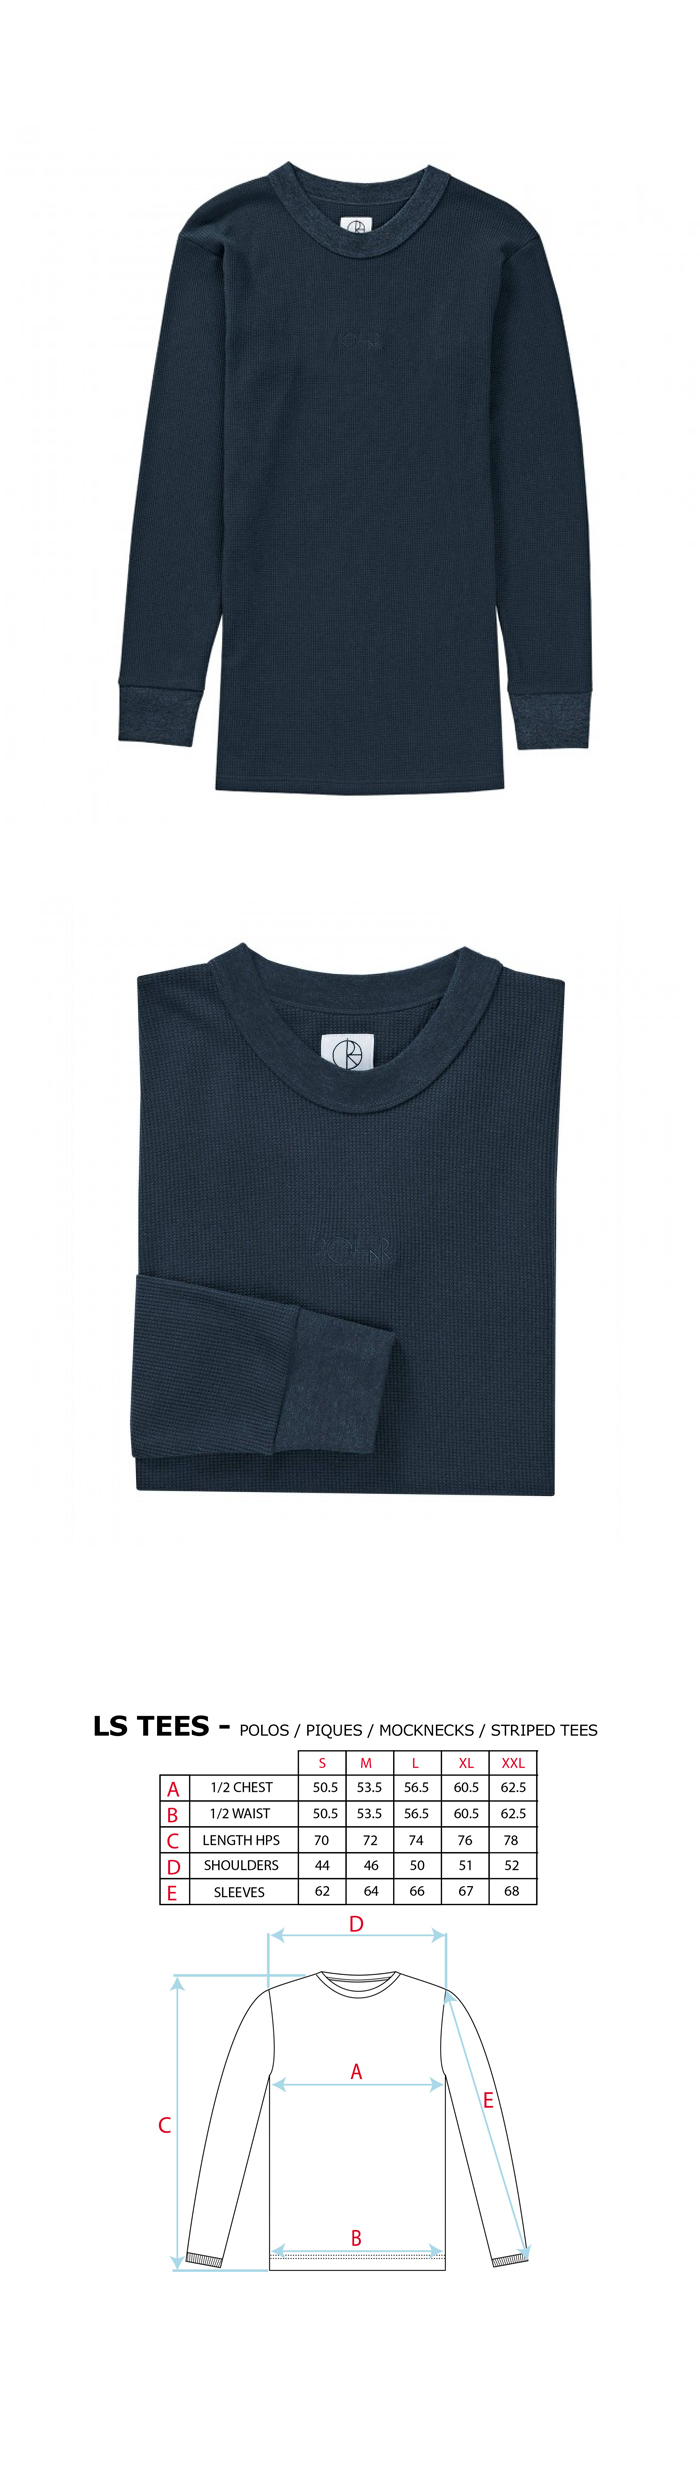 폴라(POLAR) Thermal Longsleeve - Dusty Blue